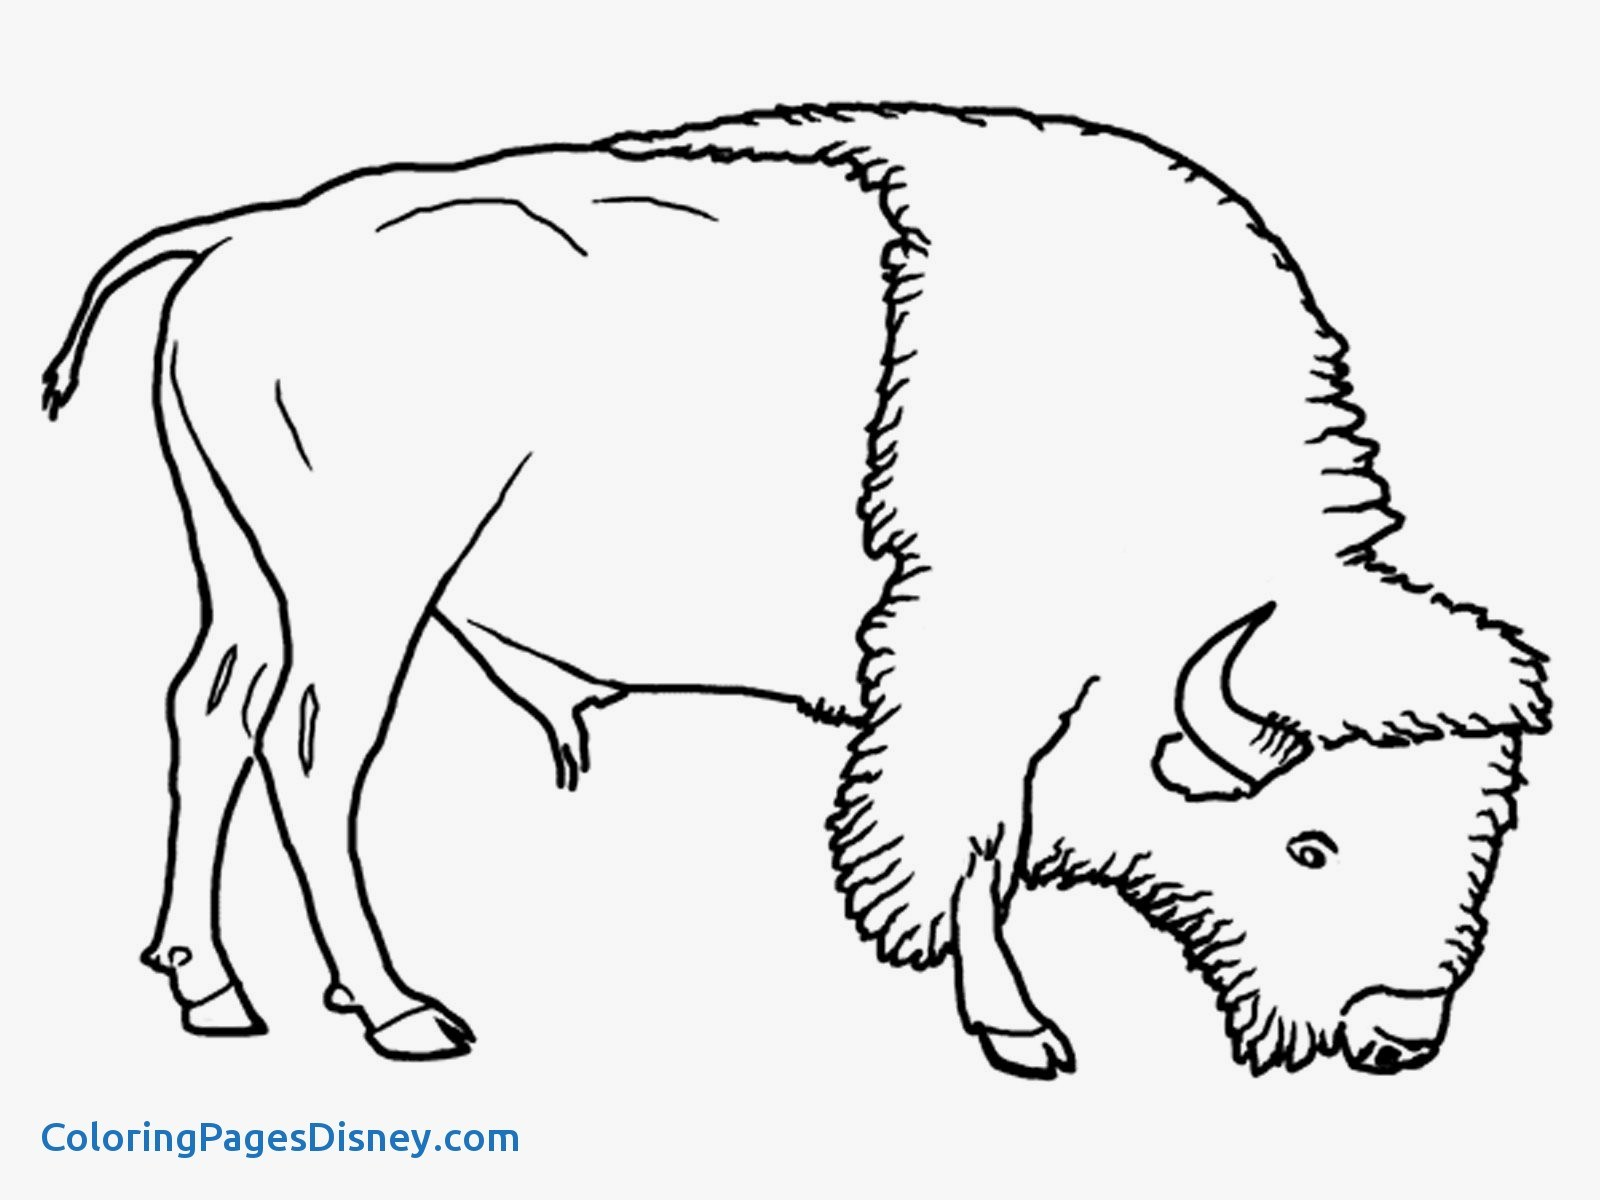 wildebeest coloring page wildebeast wildebeest page coloring